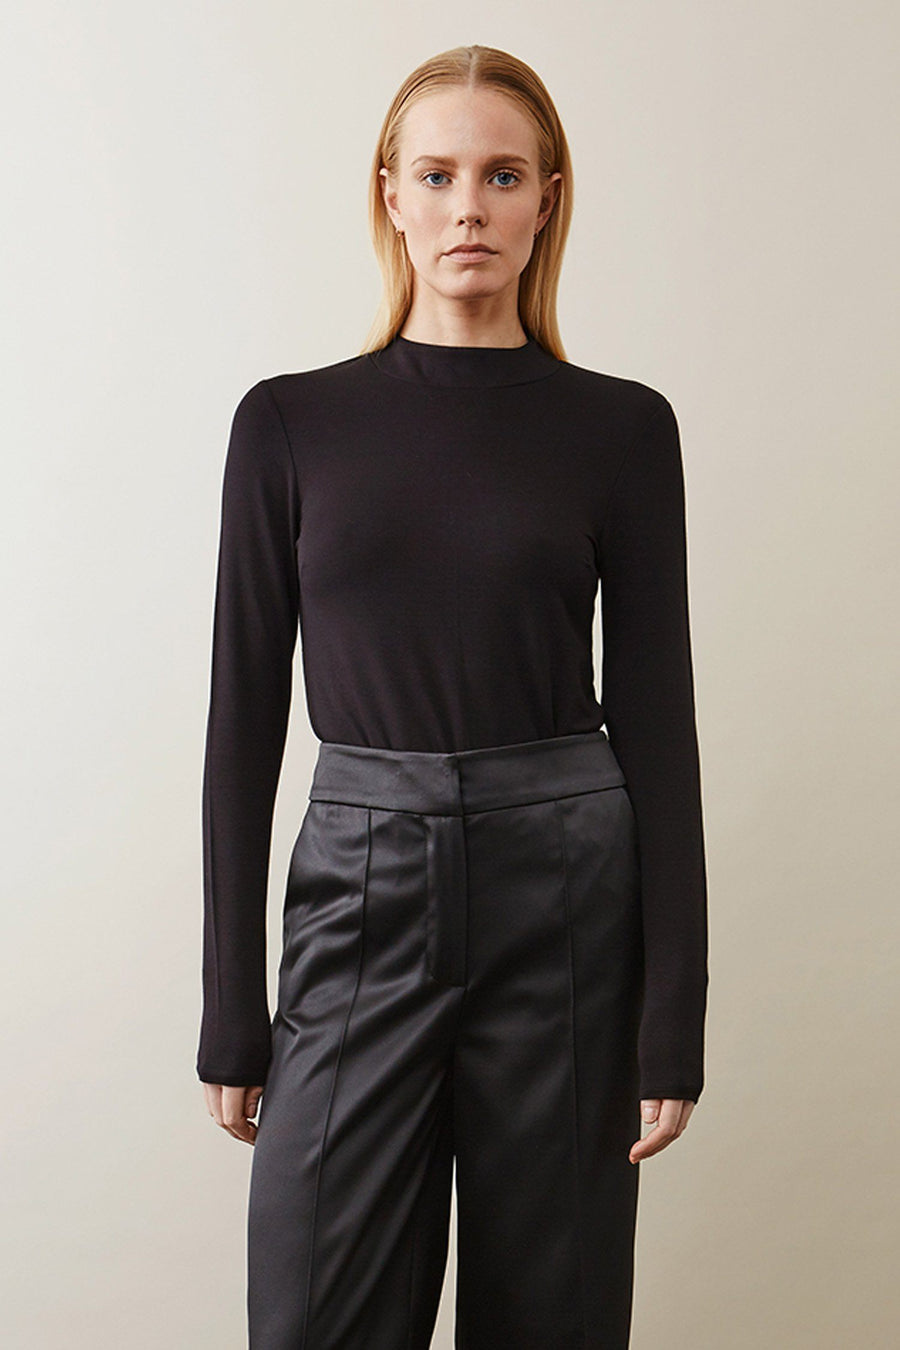 CHRISTY TOP - BLACK Top Stylein